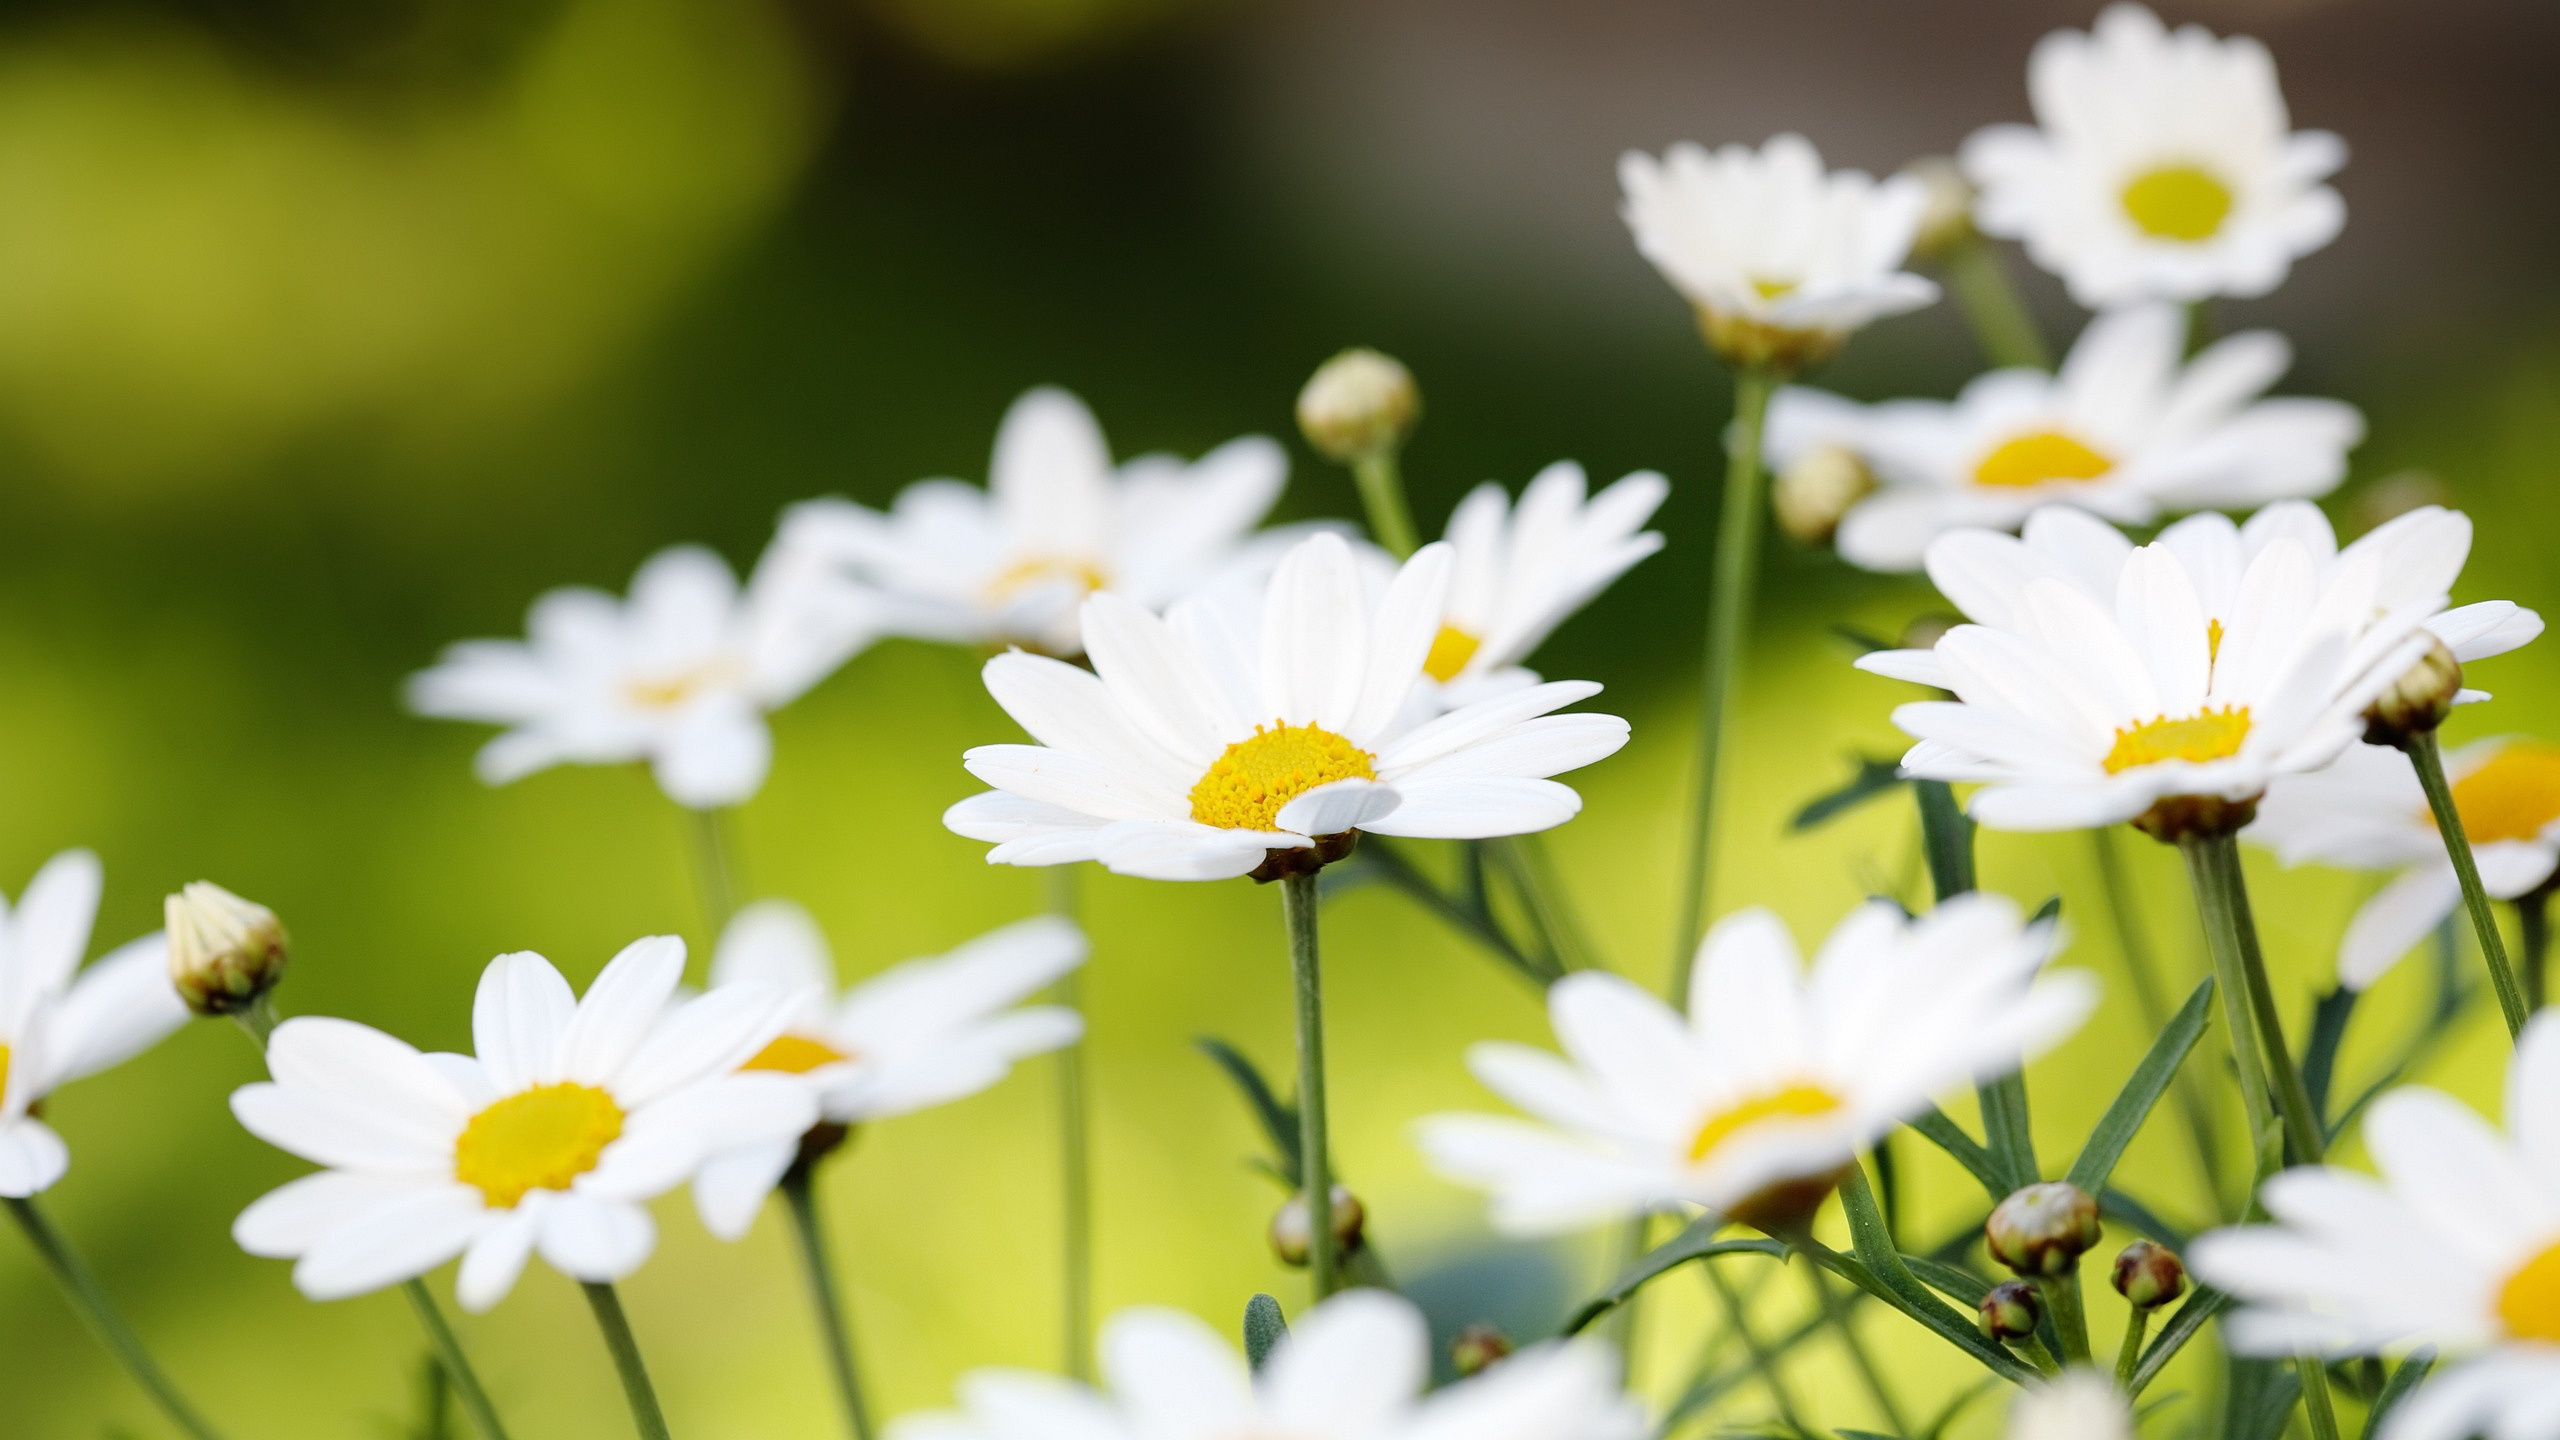 Awesome Love Quotes Hd Wallpapers Daisy Wallpaper High Quality Pixelstalk Net